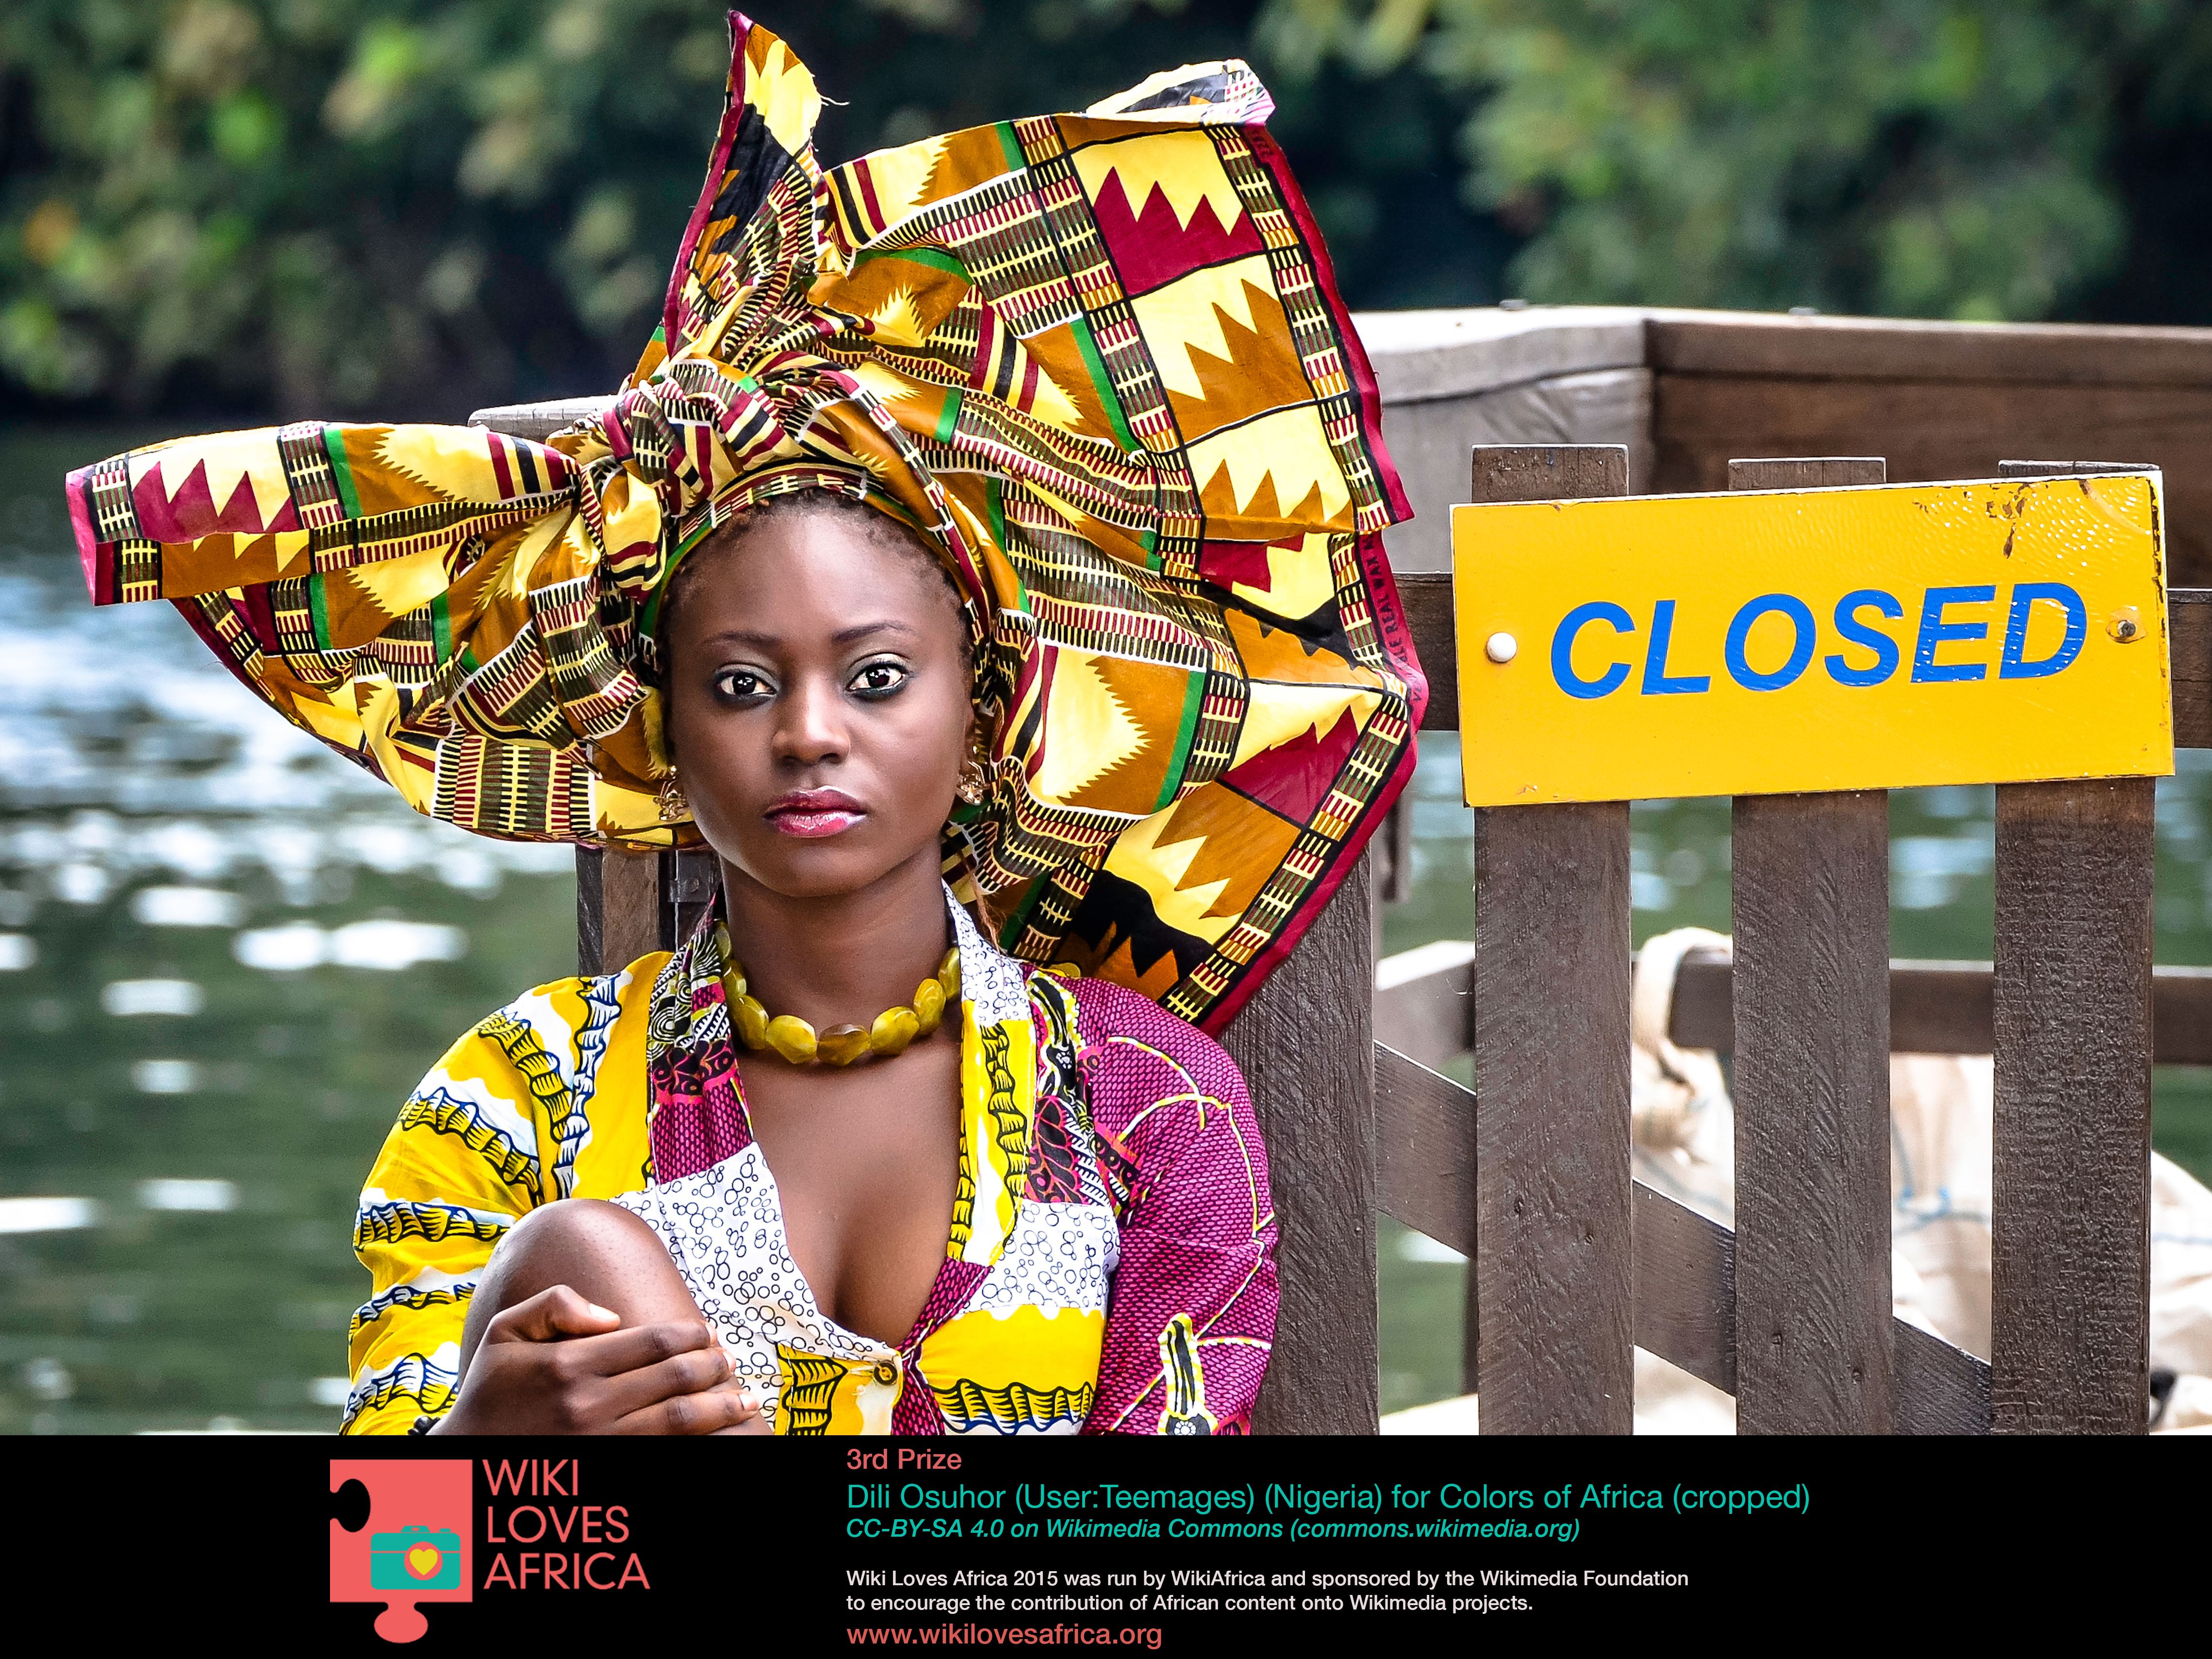 3rd Prize Winner: Colours of Africa